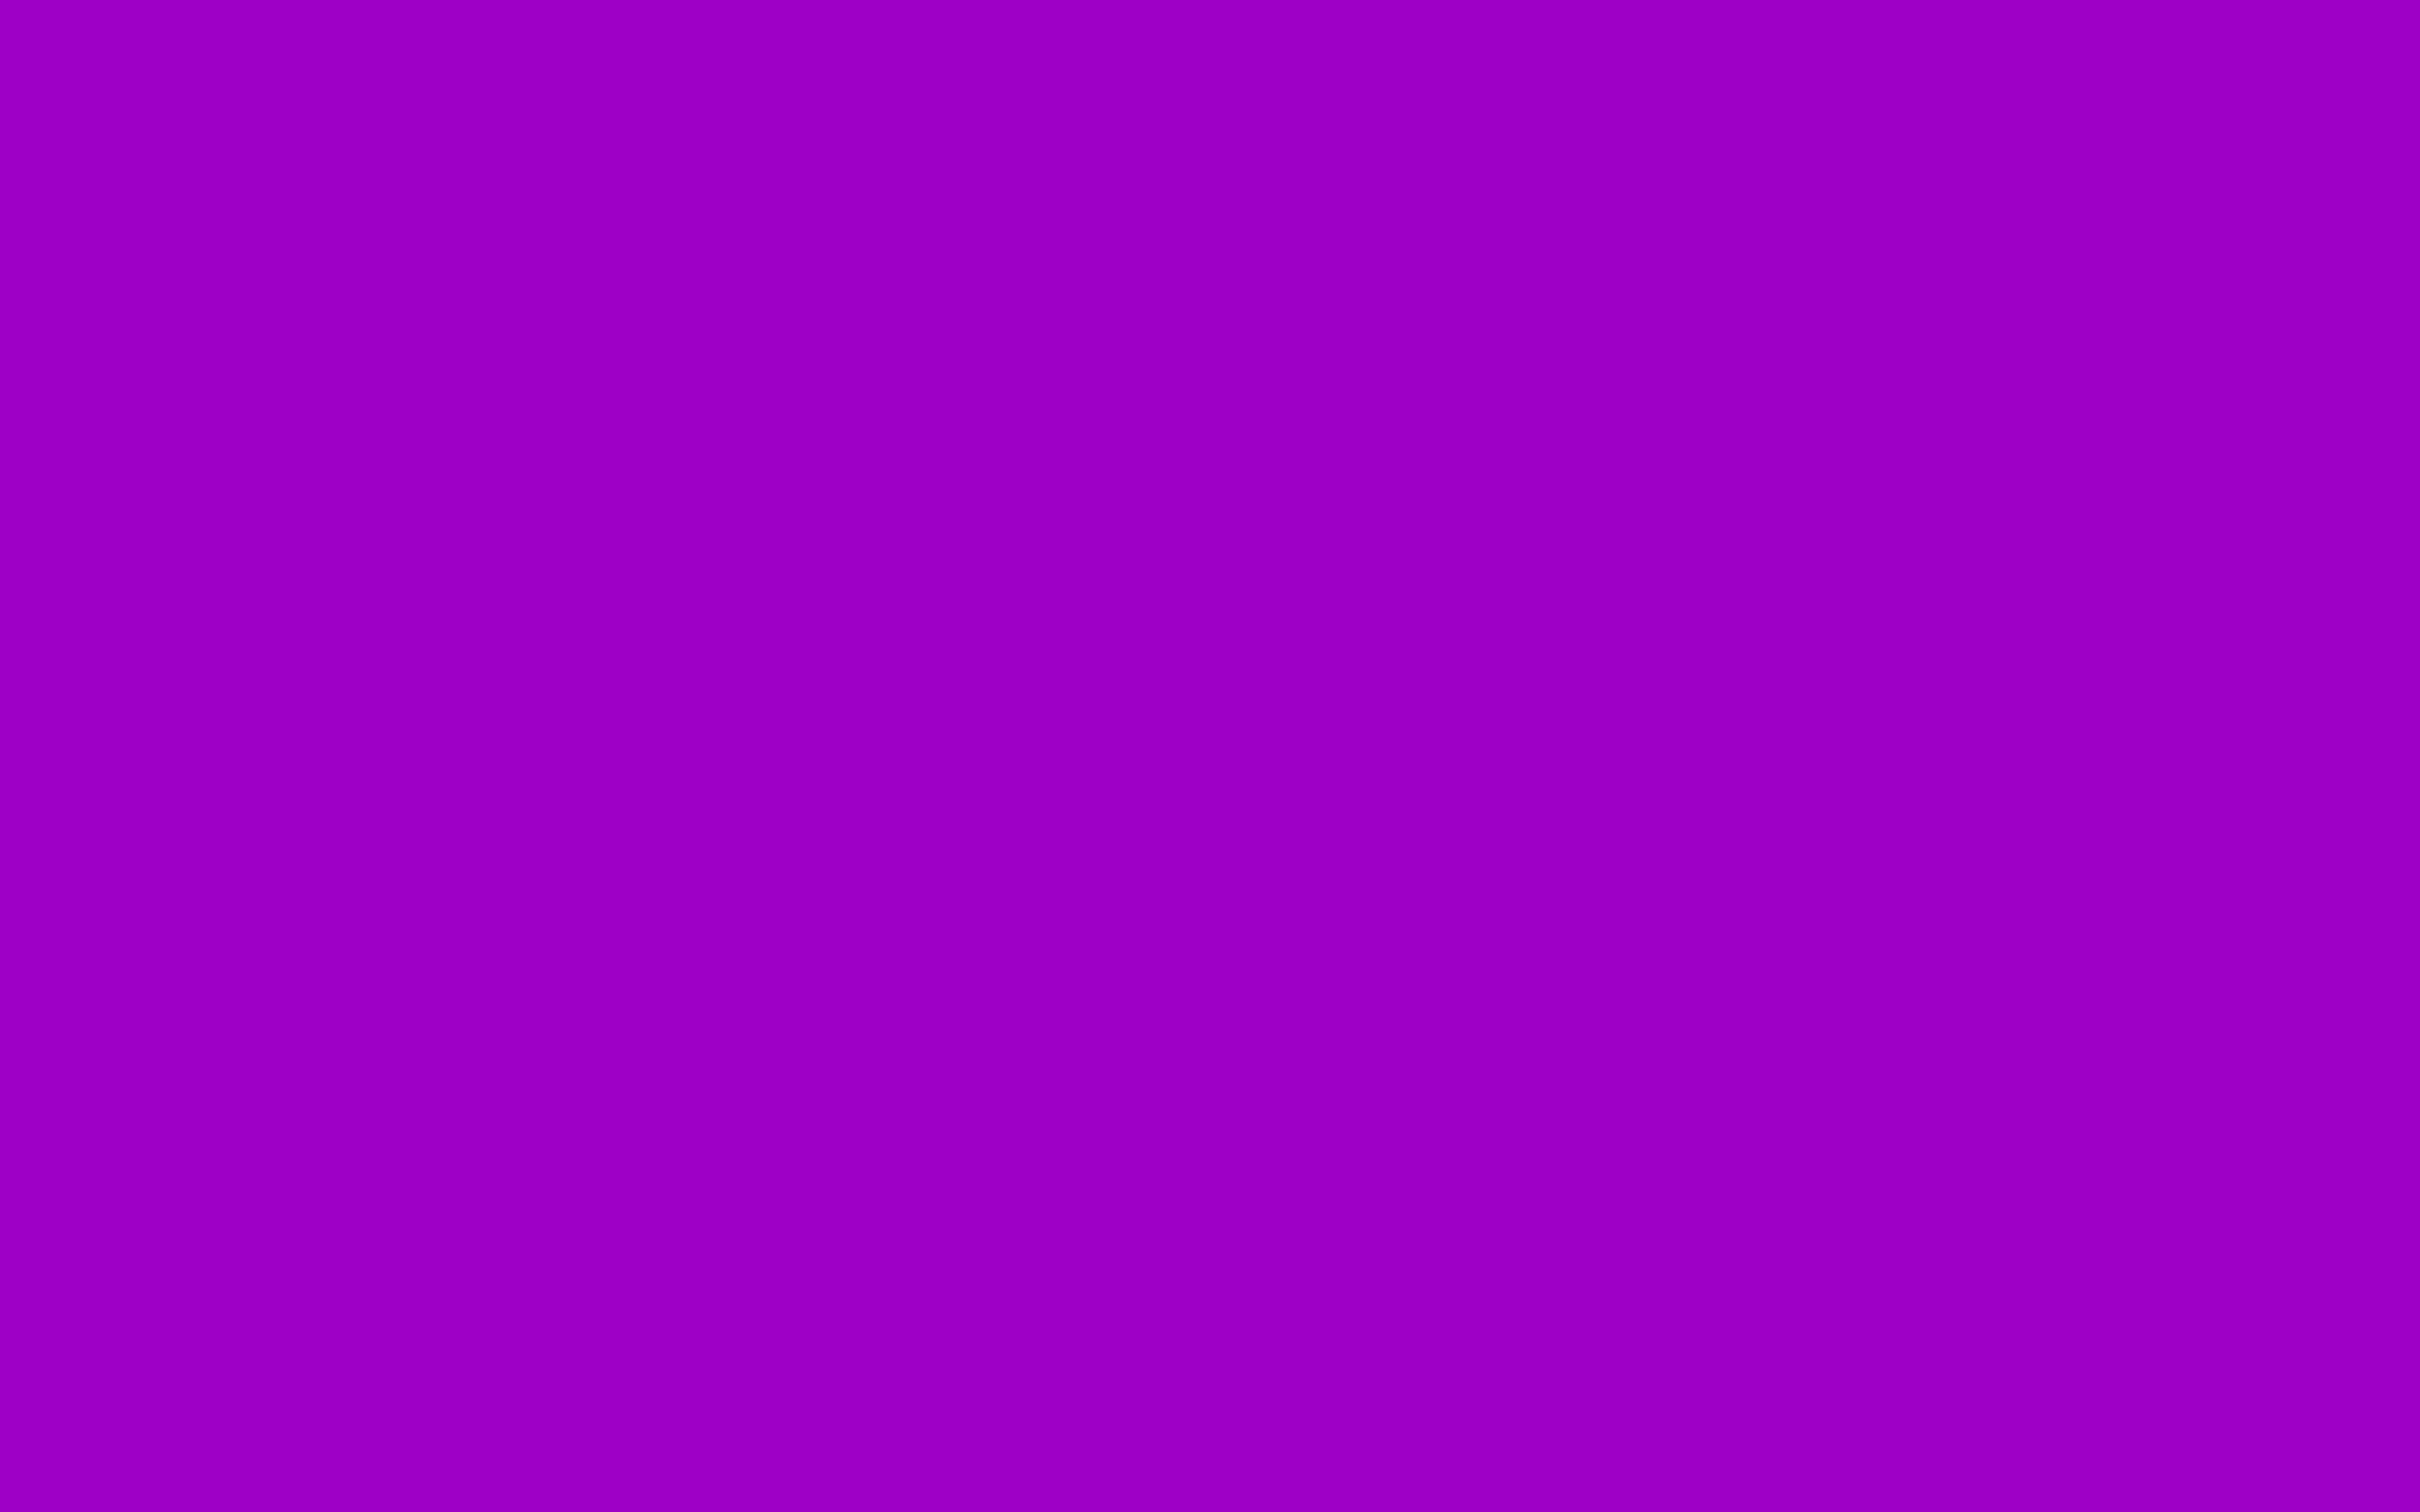 2880x1800 Purple Munsell Solid Color Background